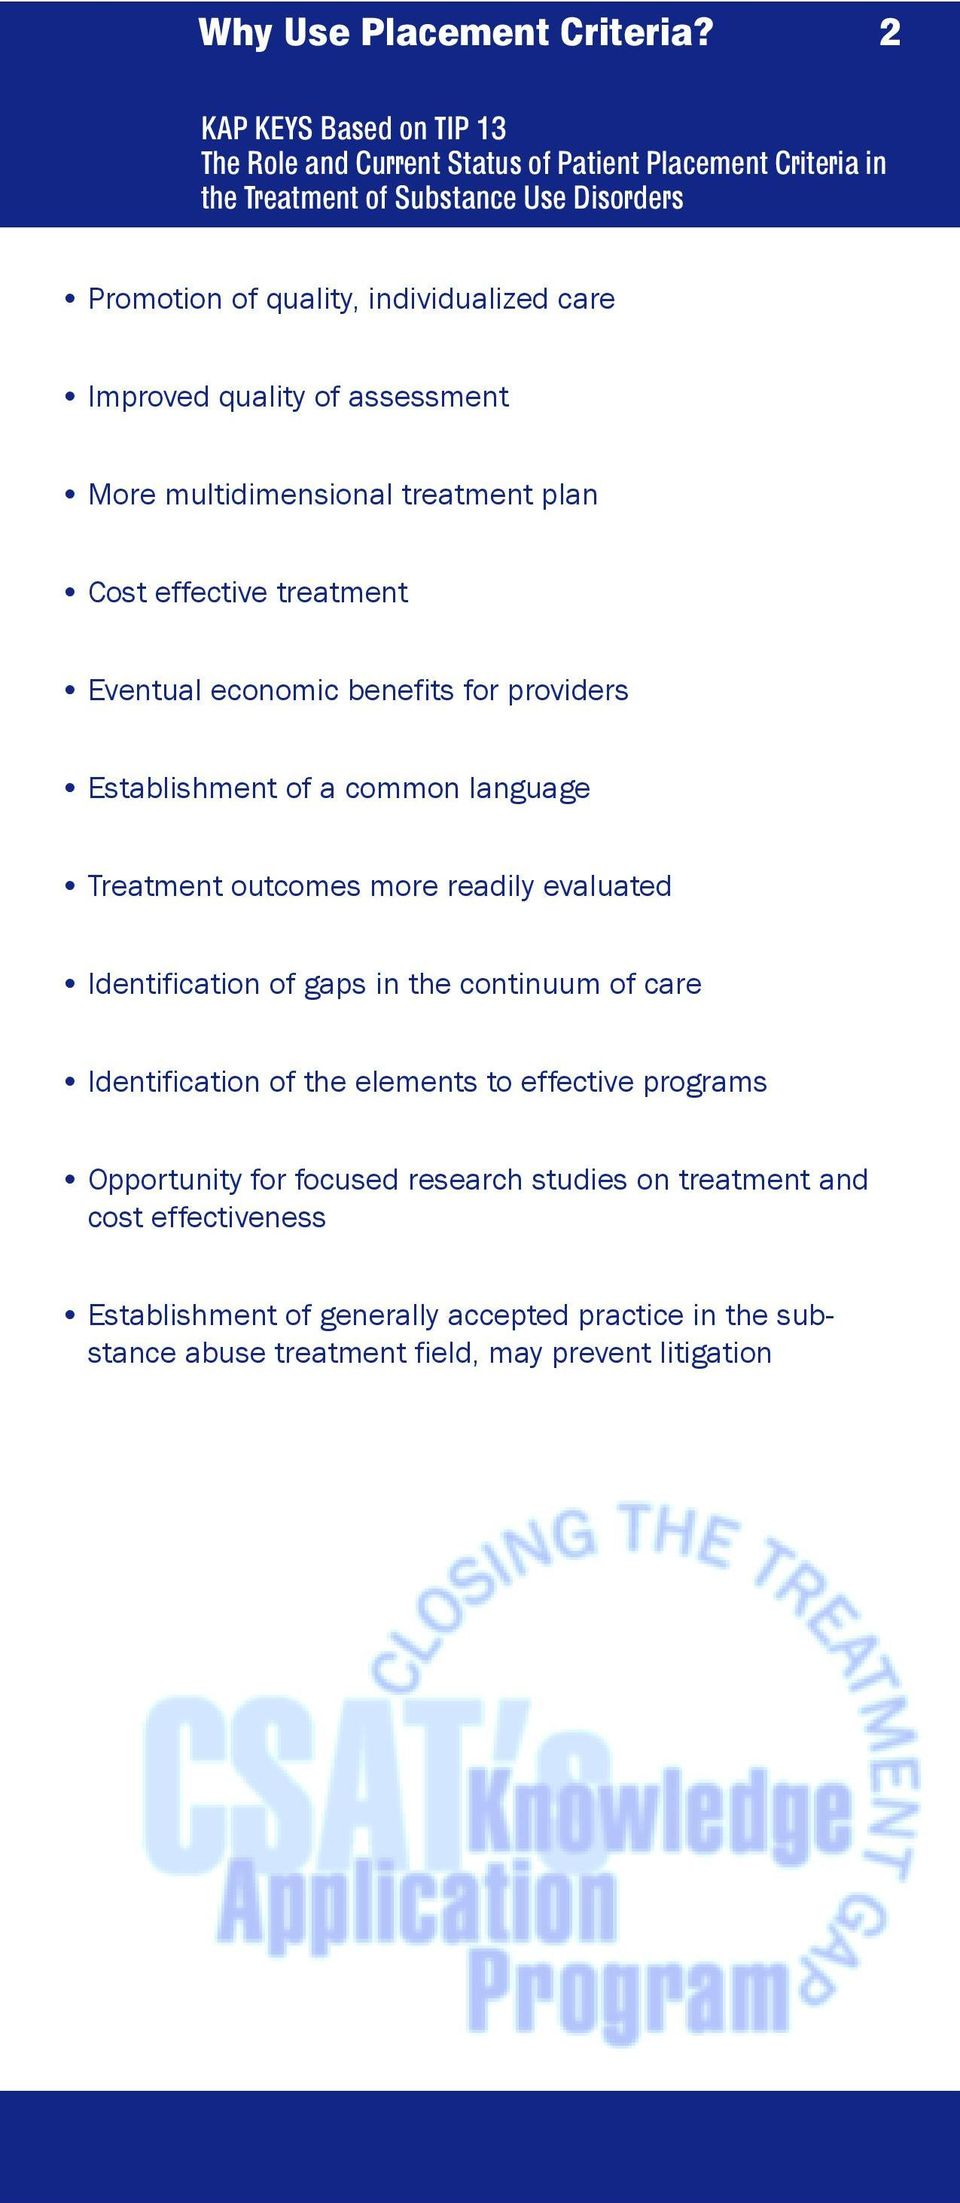 Eventual economic benefits for providers Establishment of a common language Treatment outcomes more readily evaluated Identification of gaps